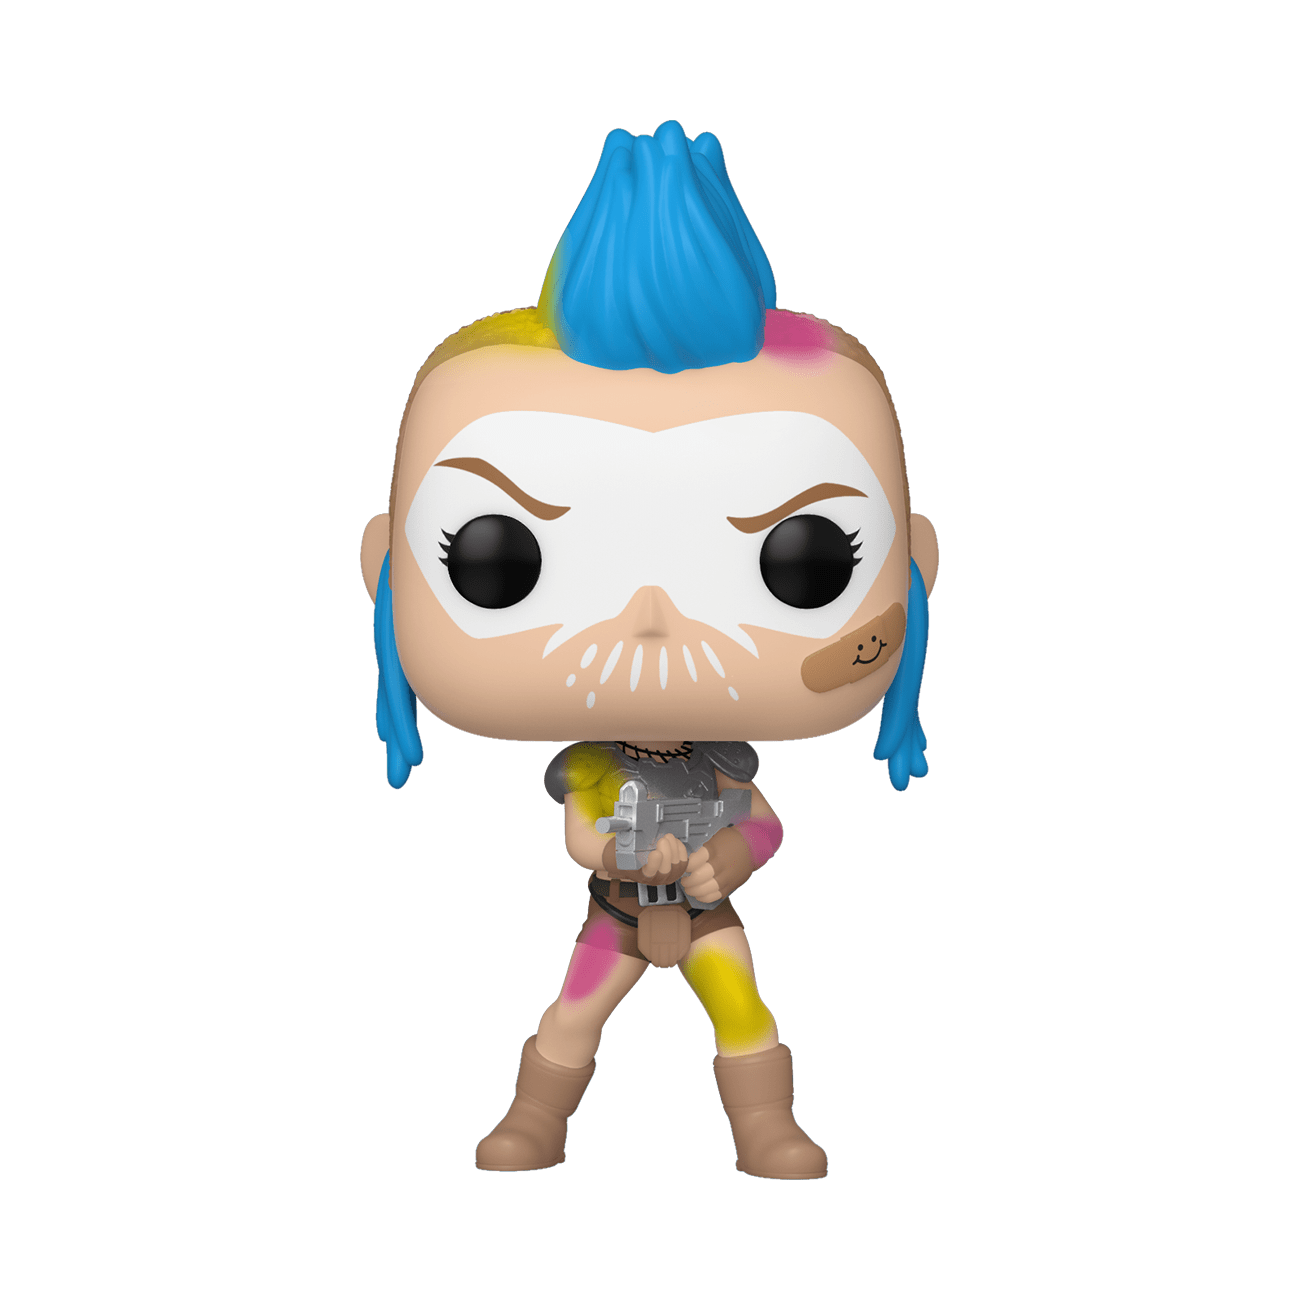 Rage 2 Mohawk Girl Pop! Vinyl Figure